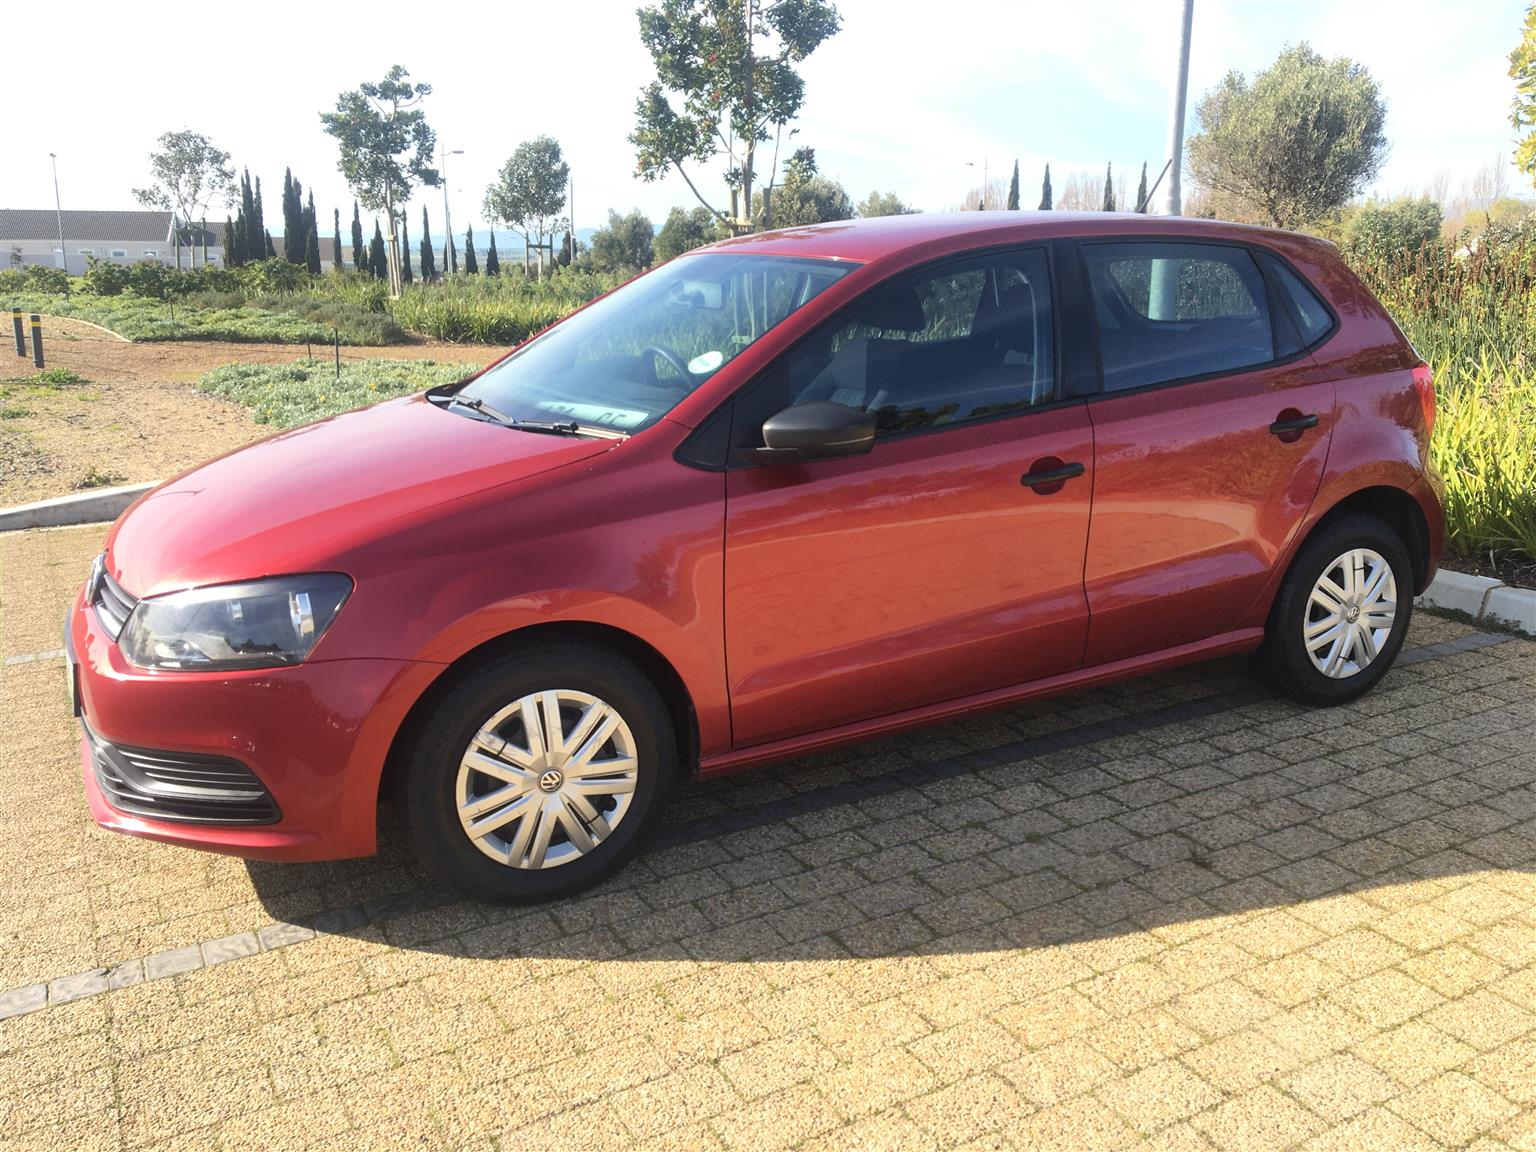 2015 VW Polo 1.2 Tsi with 114000 Kms and FSH